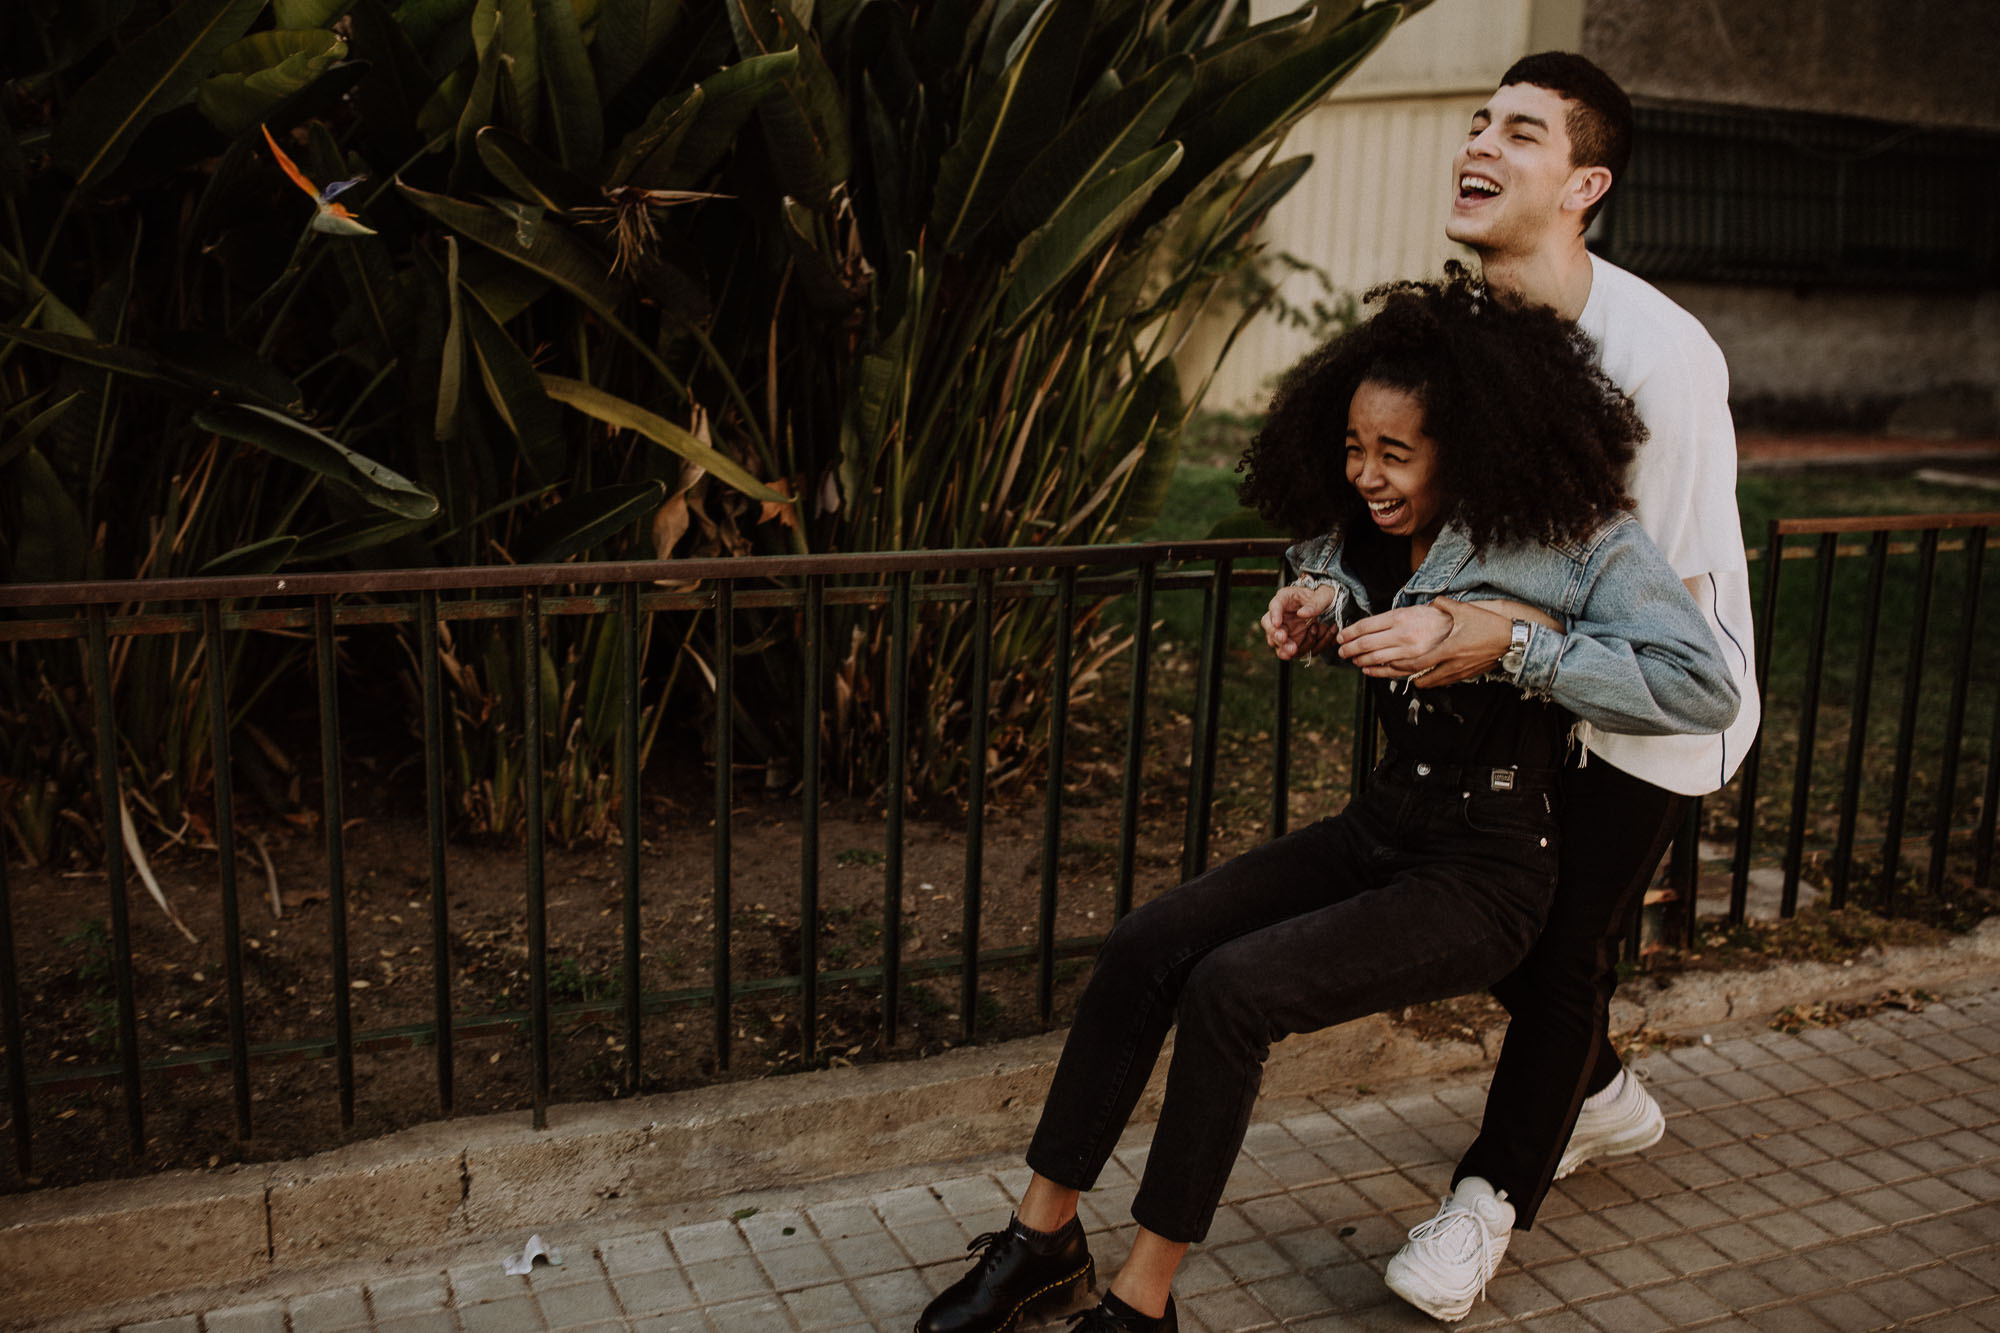 raissa simon photography couple love barcelona 059 - Bisola + Matheo